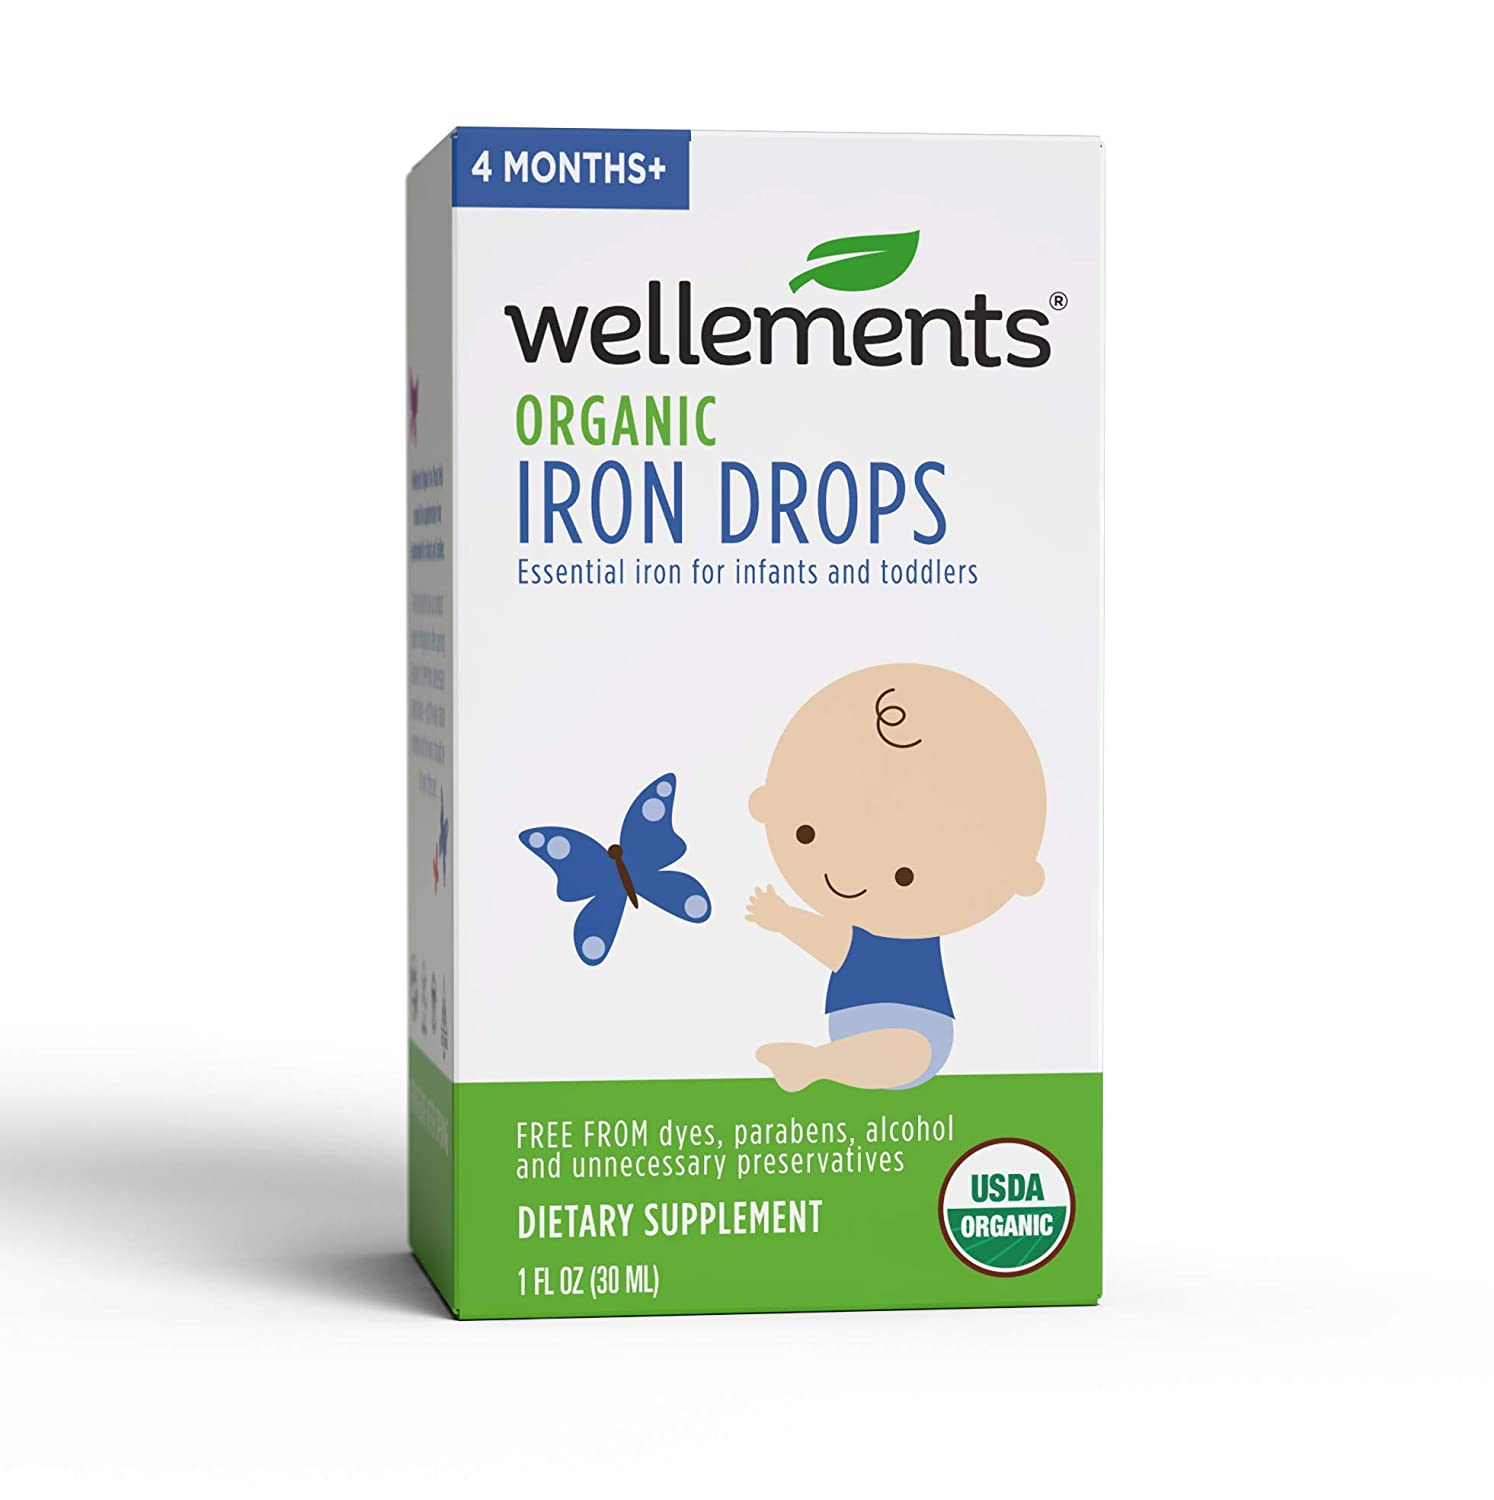 Wellements Organic Iron Drops, 1 Fl Oz, Liquid Iron Vitamin Supplement for Infants and Toddlers, Free from Dyes, Parabens, Alcohol, Preservatives